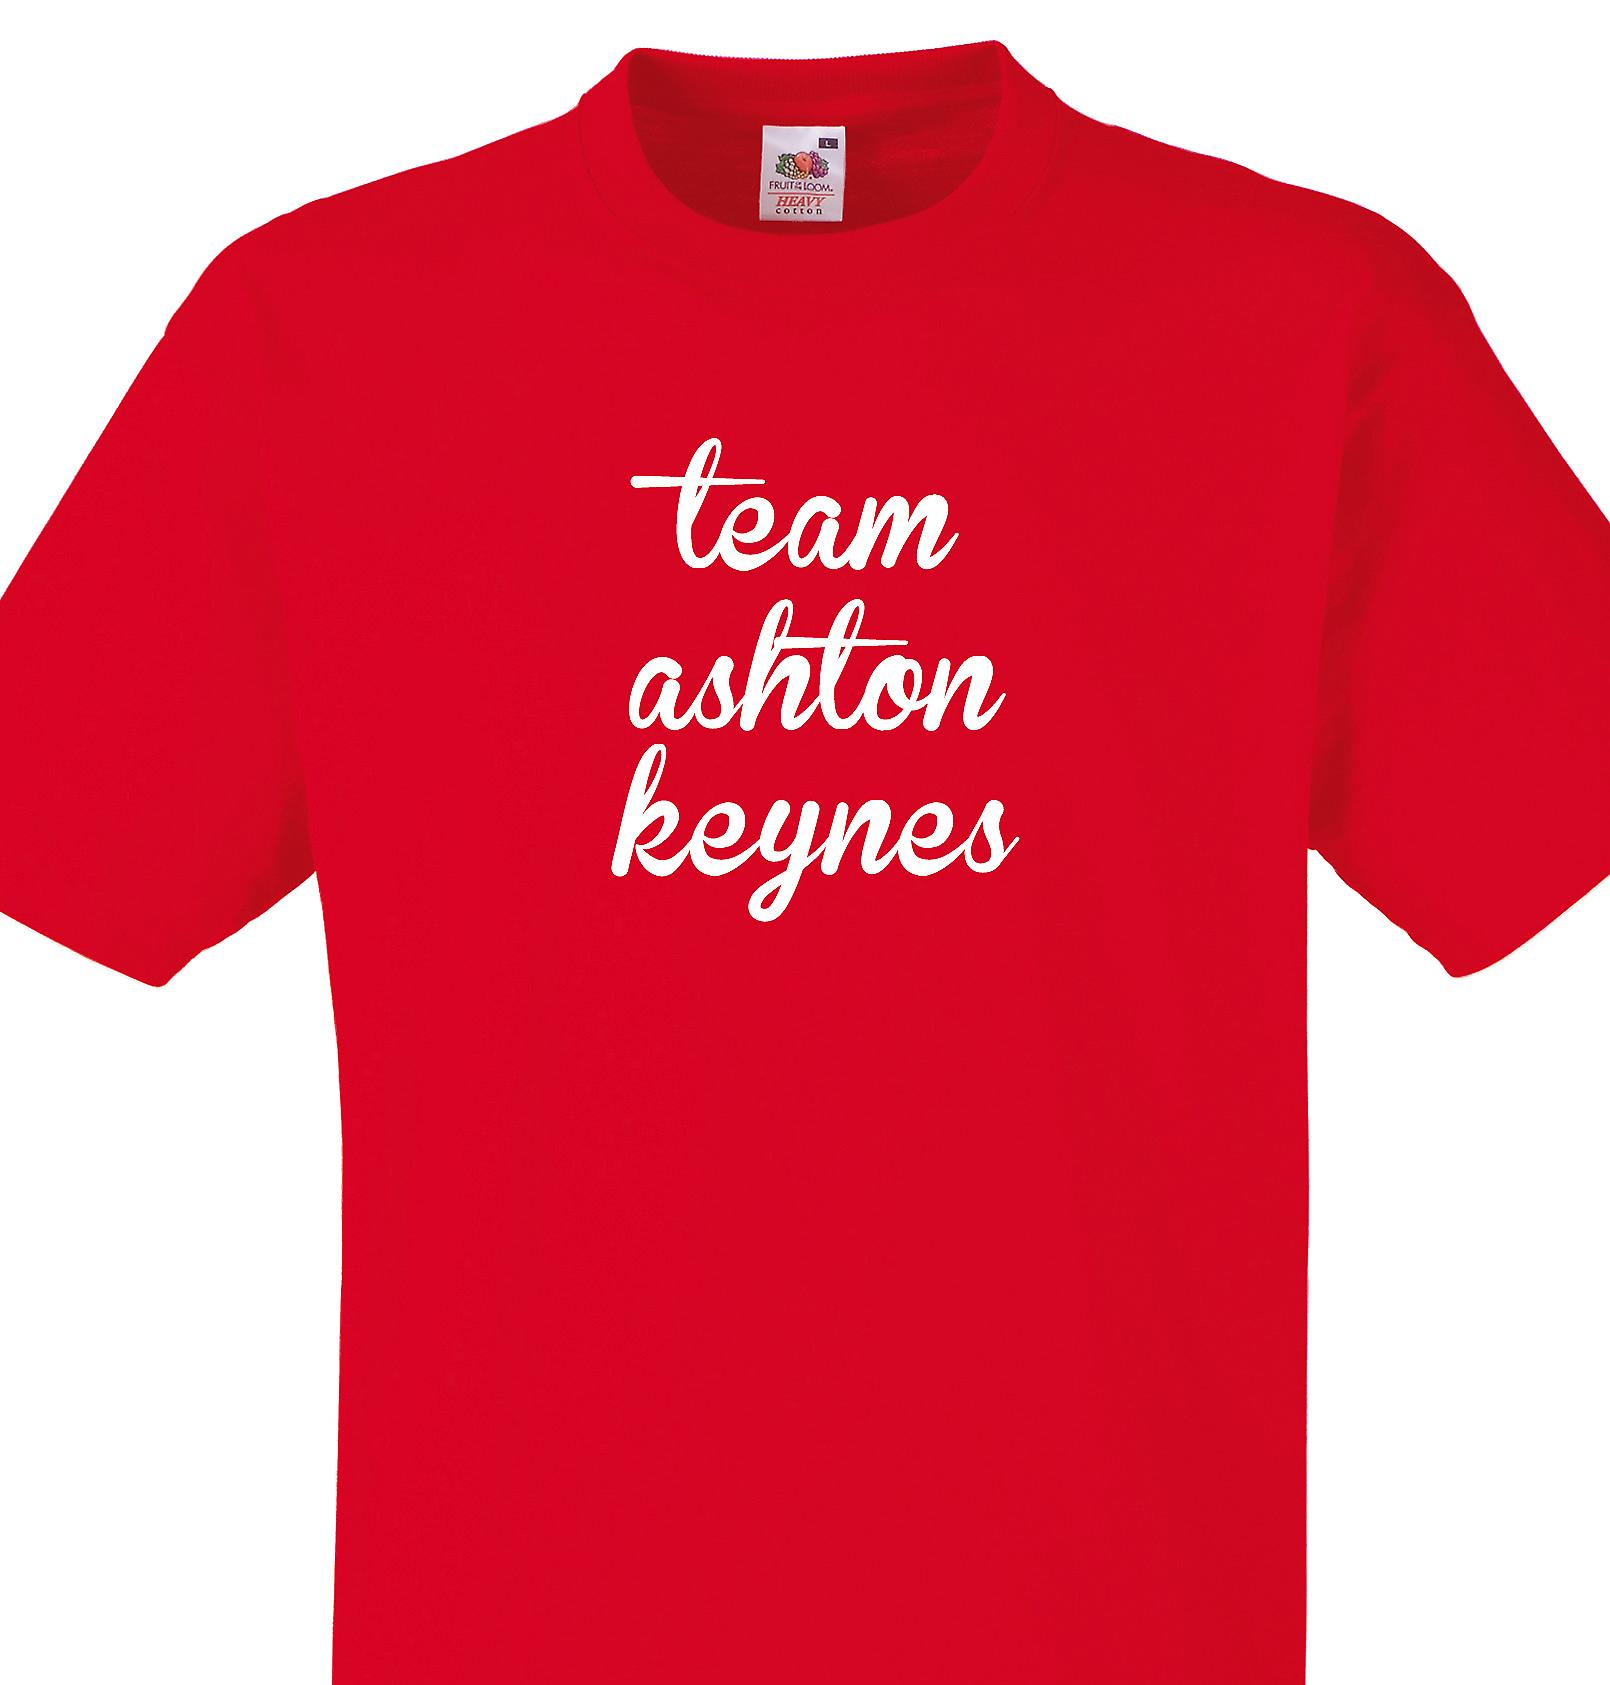 Team Ashton keynes Red T shirt